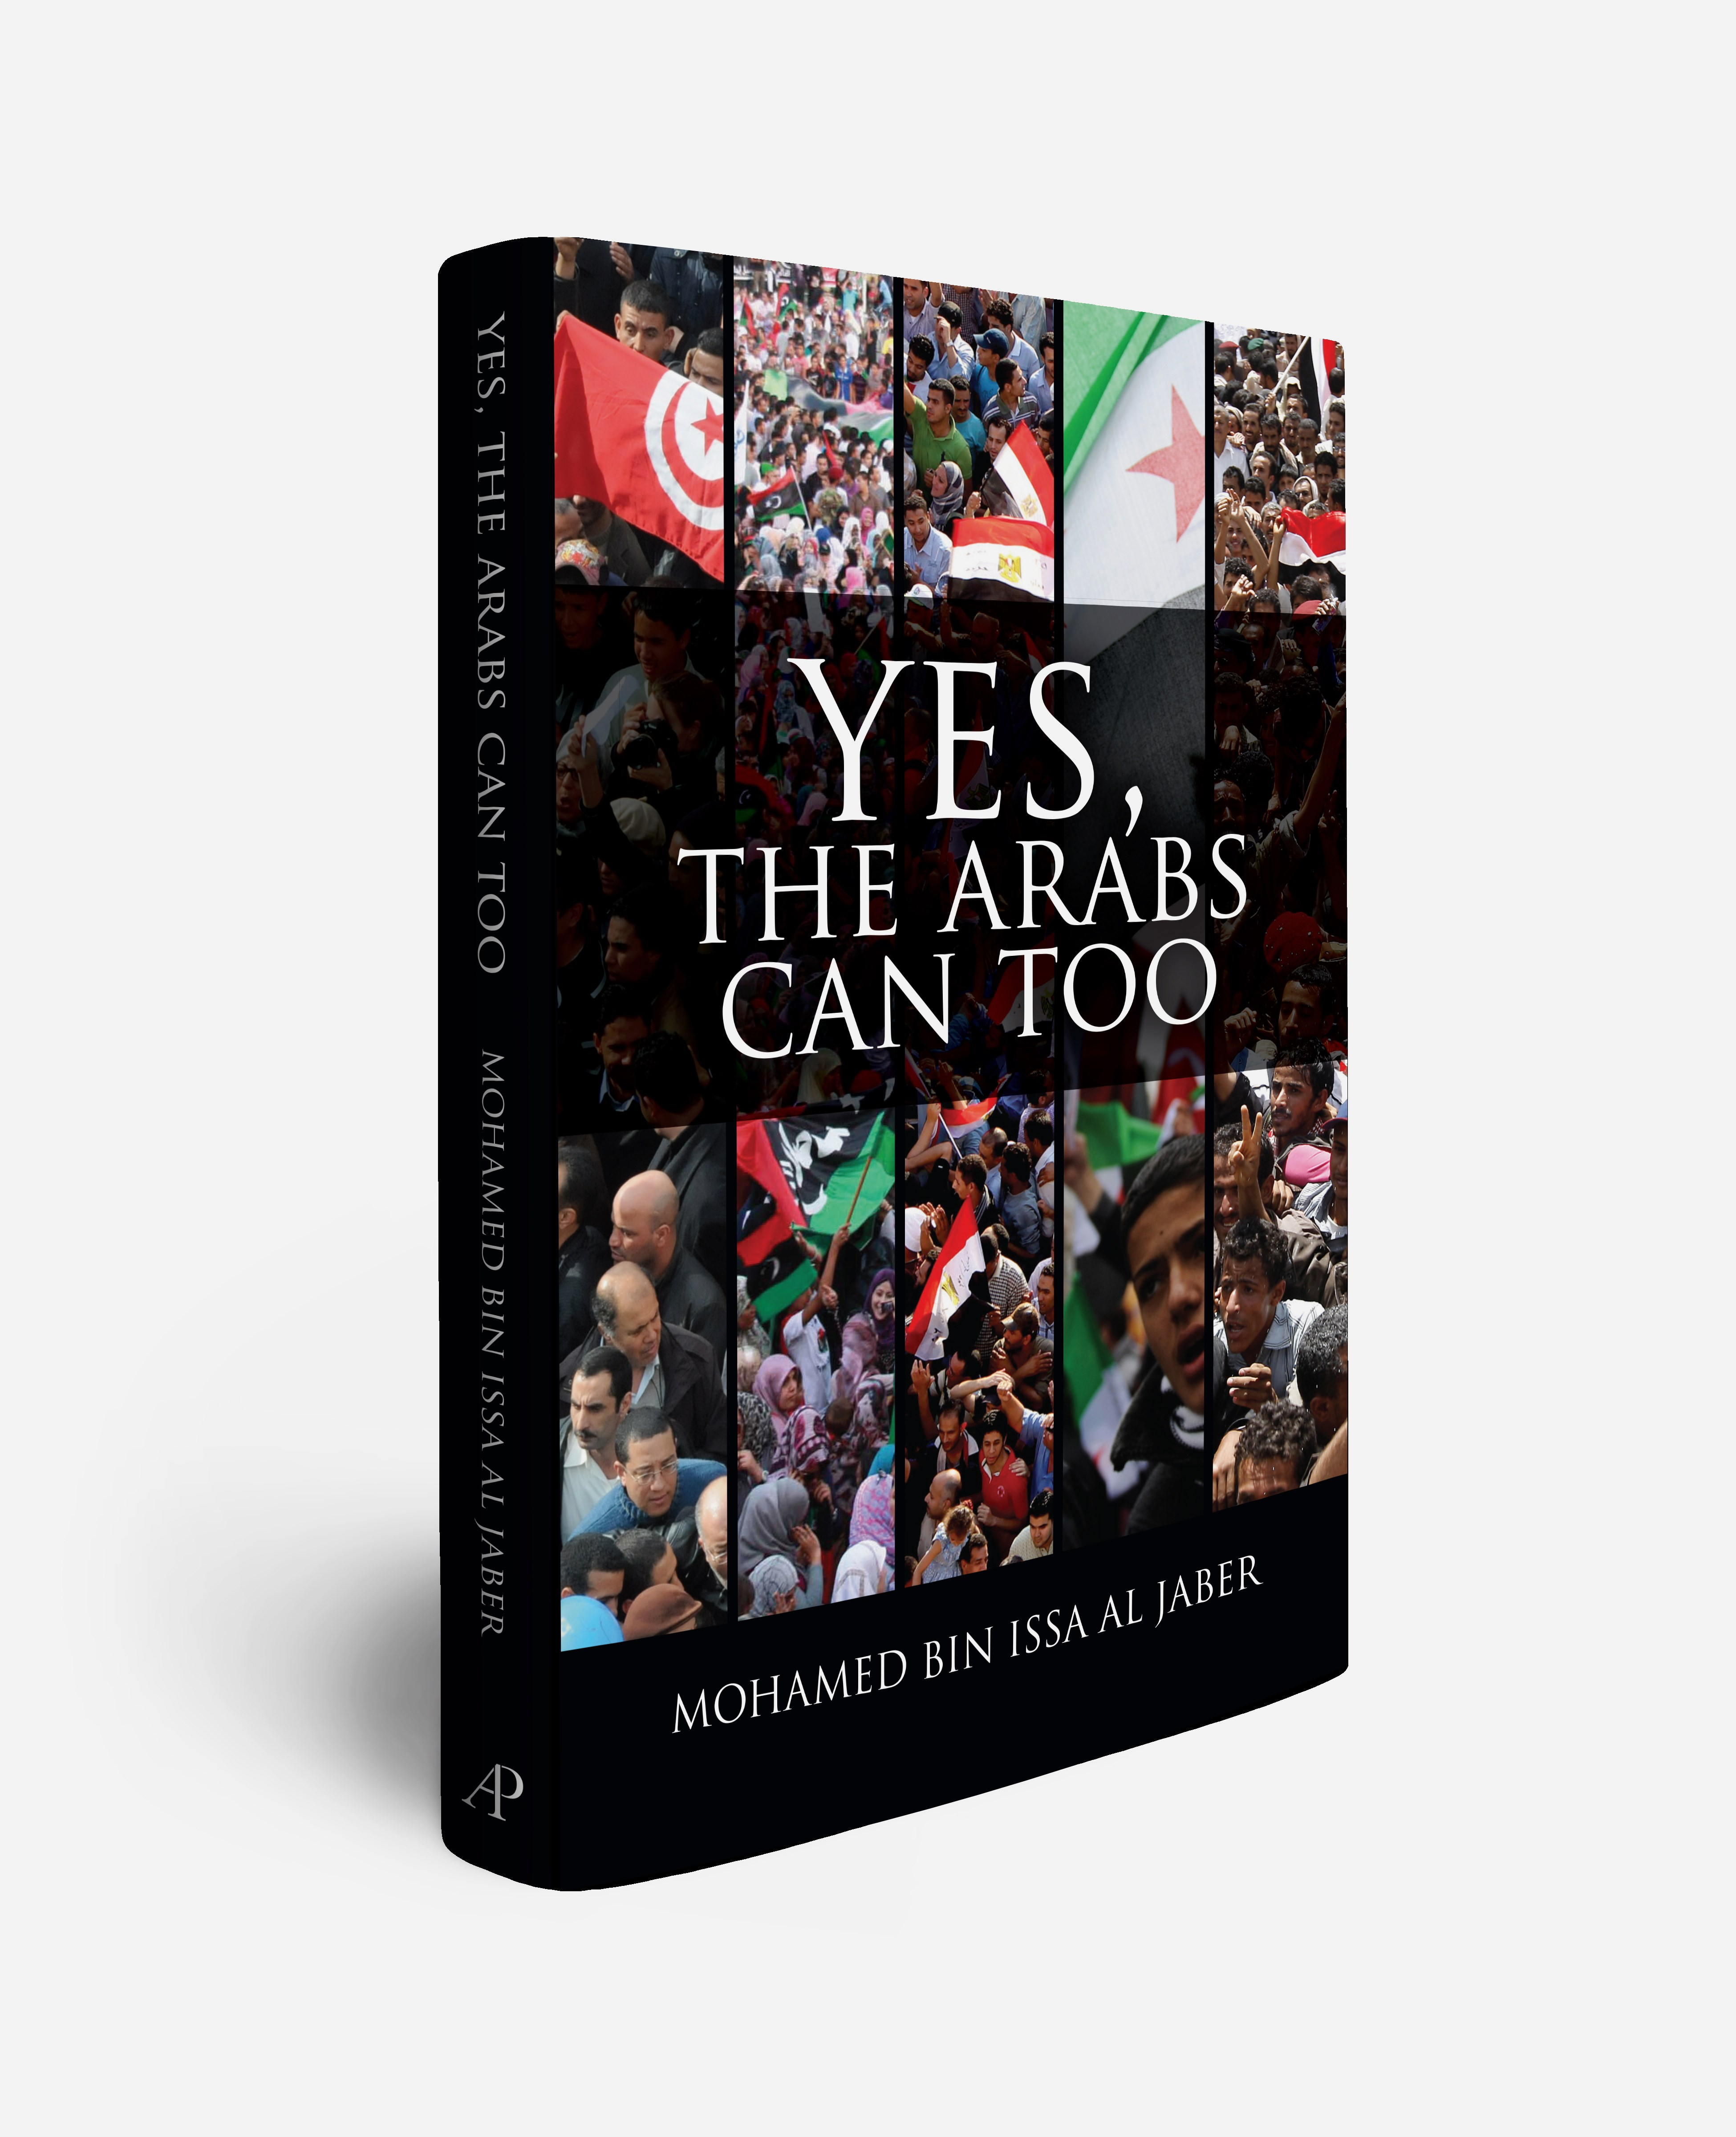 Book: Yes, the Arabs Can Too